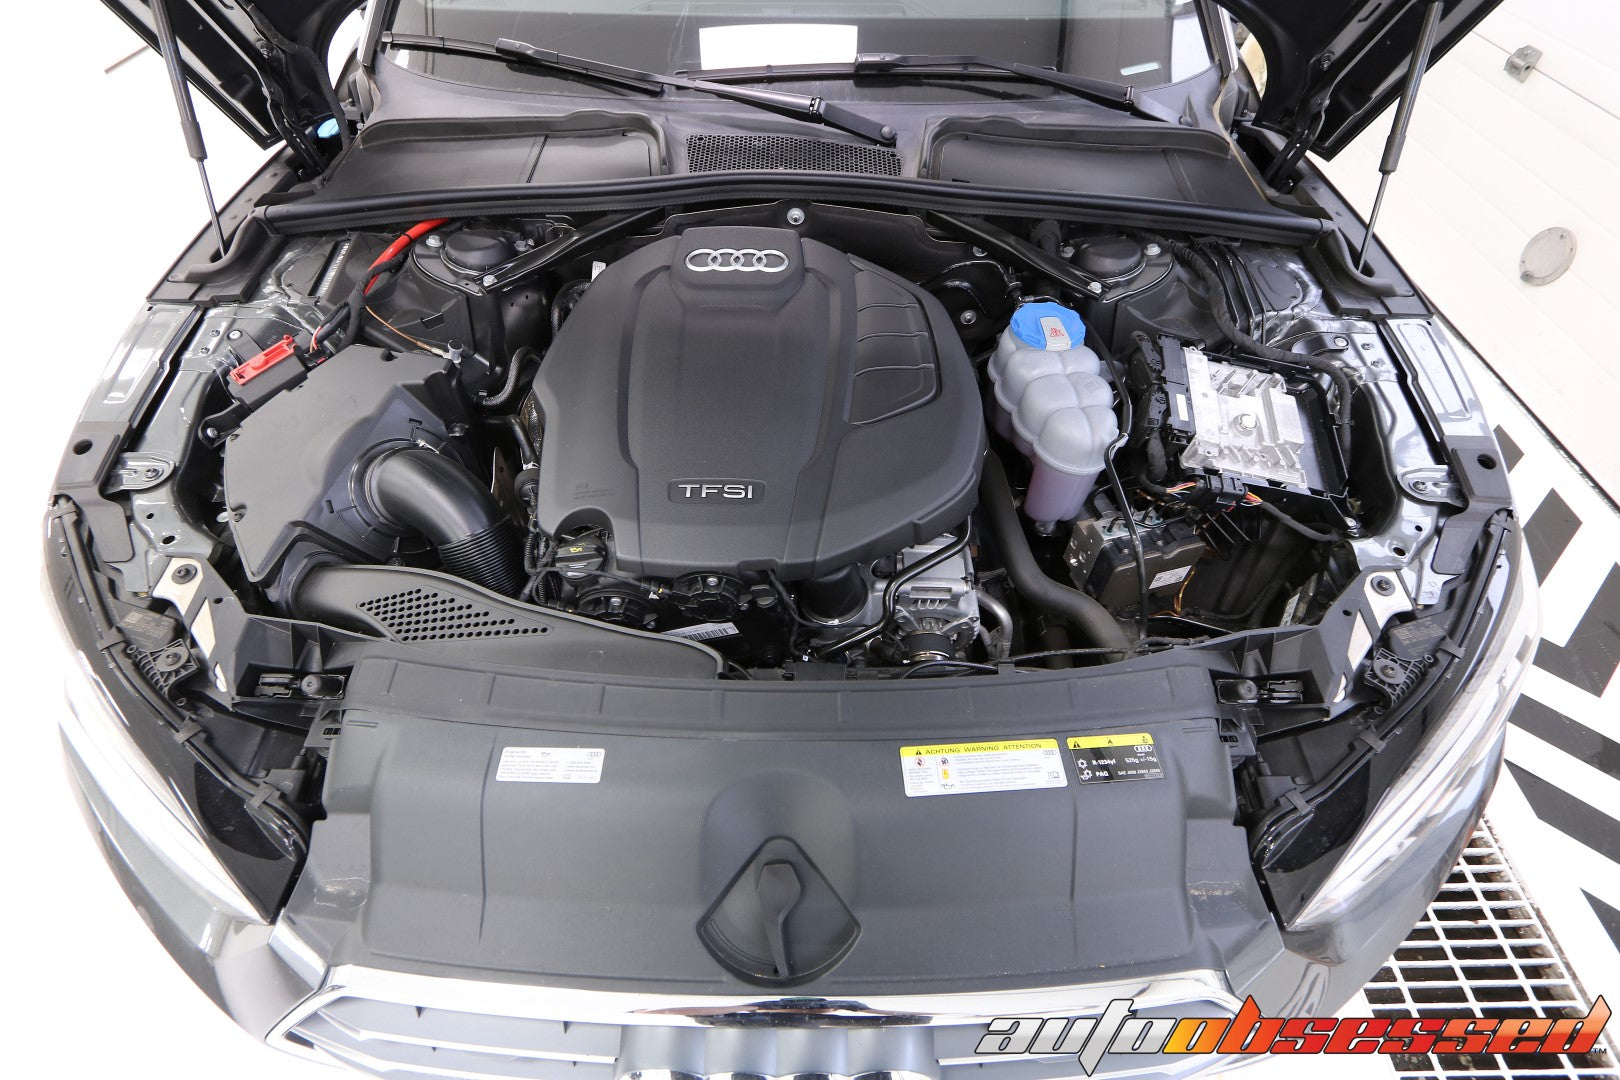 2020 Audi S5 Engine Bay - Auto Obsessed